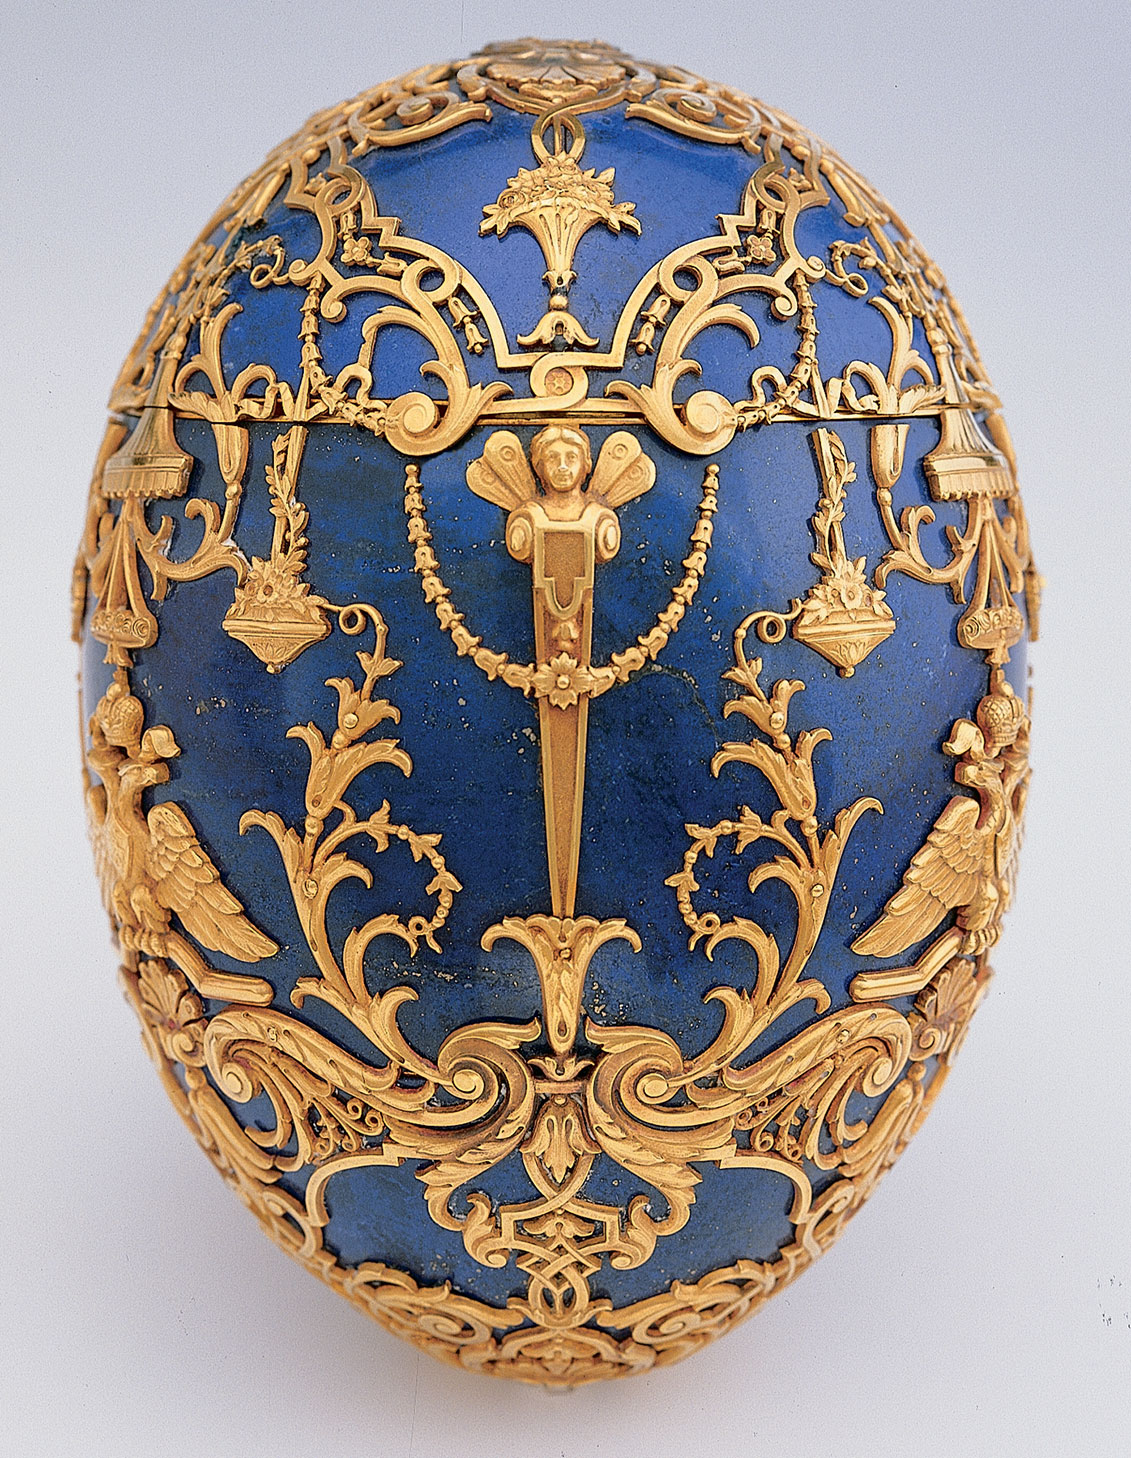 Detail of one of the Virginia Museum of Fine Arts' Faberge Eggs.  Credit: VMFA.